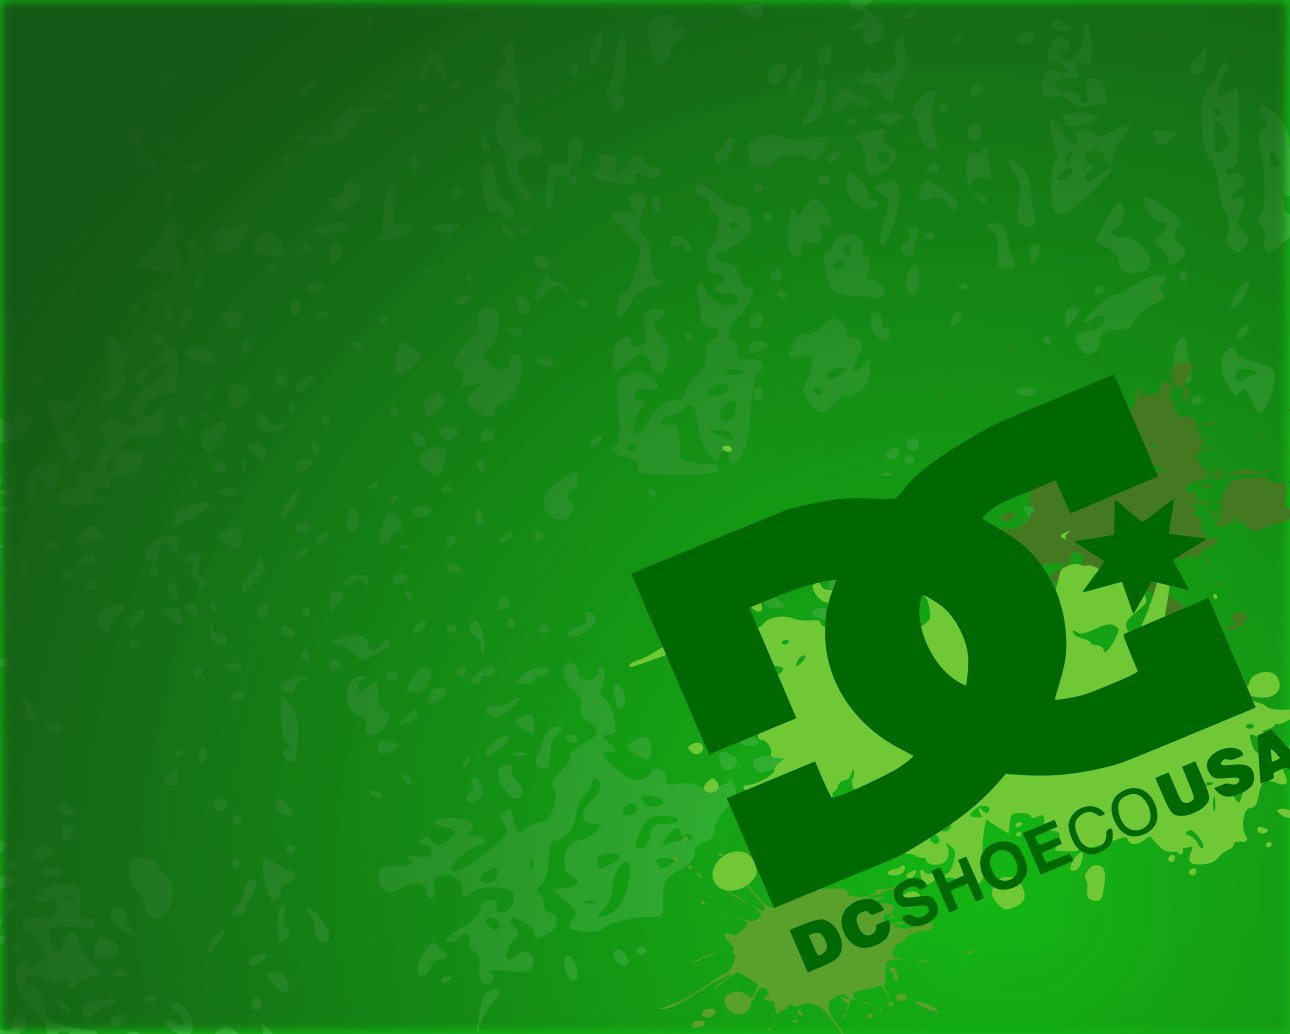 DC Shoes camo Wallpaper by bmgreatness 1290x1034